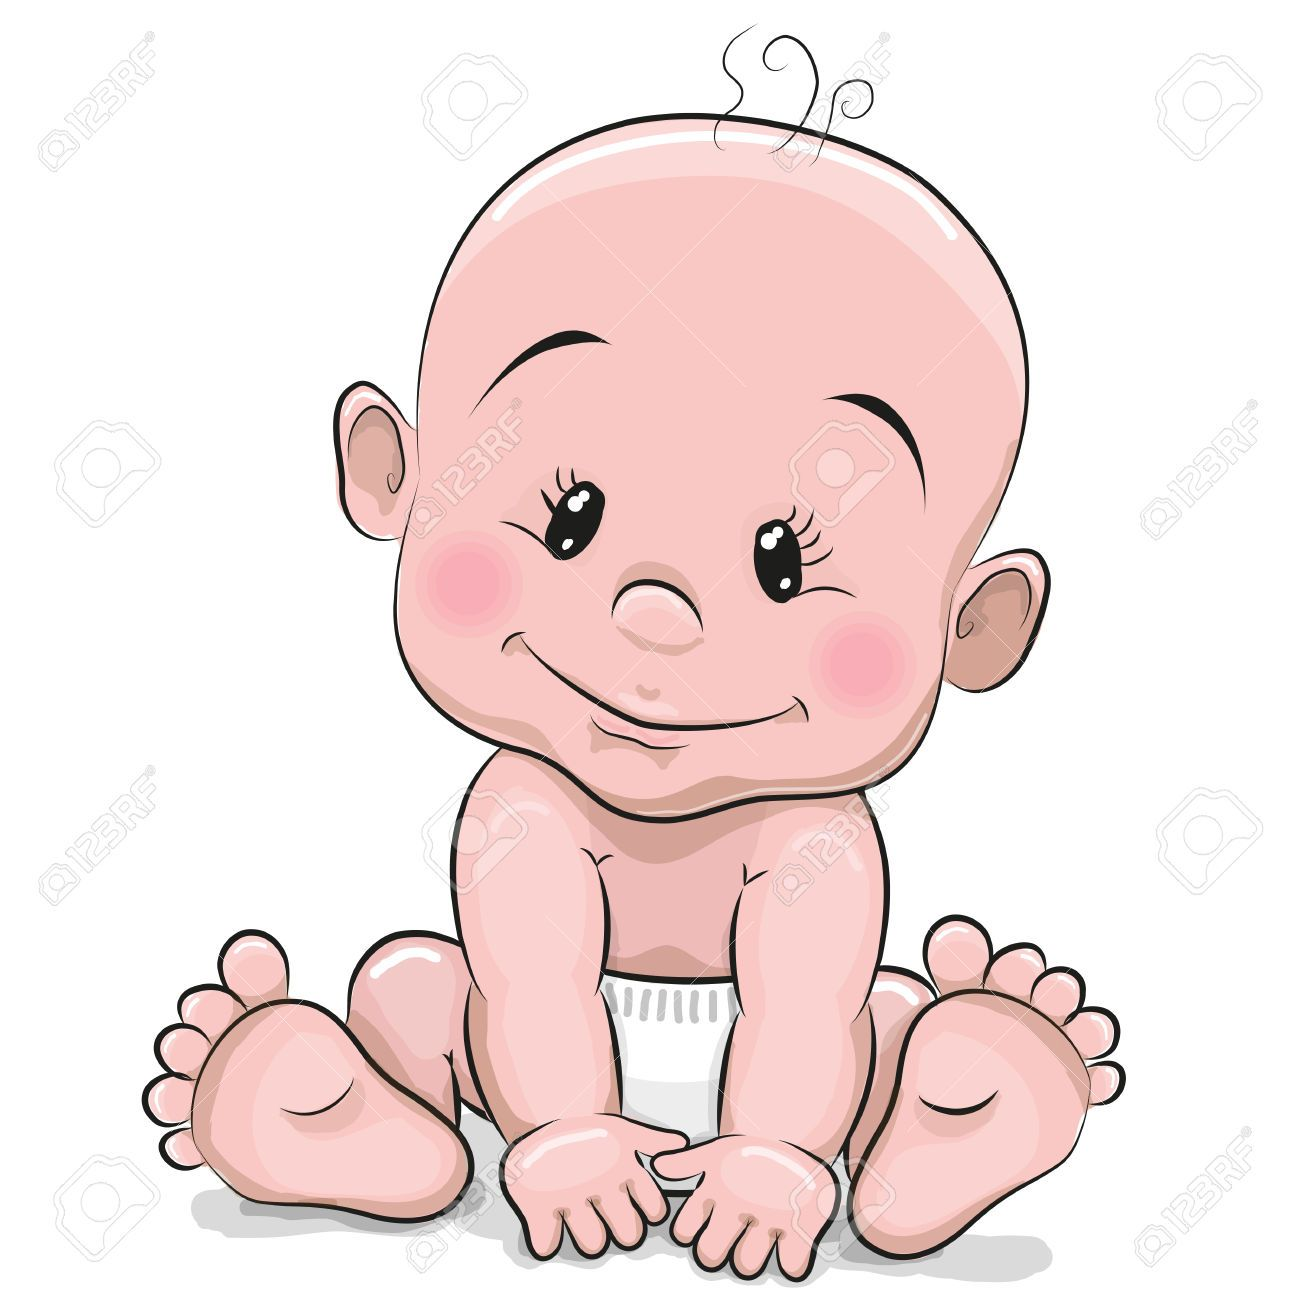 6,900 Baby Diaper Stock Vector Illustration And Royalty